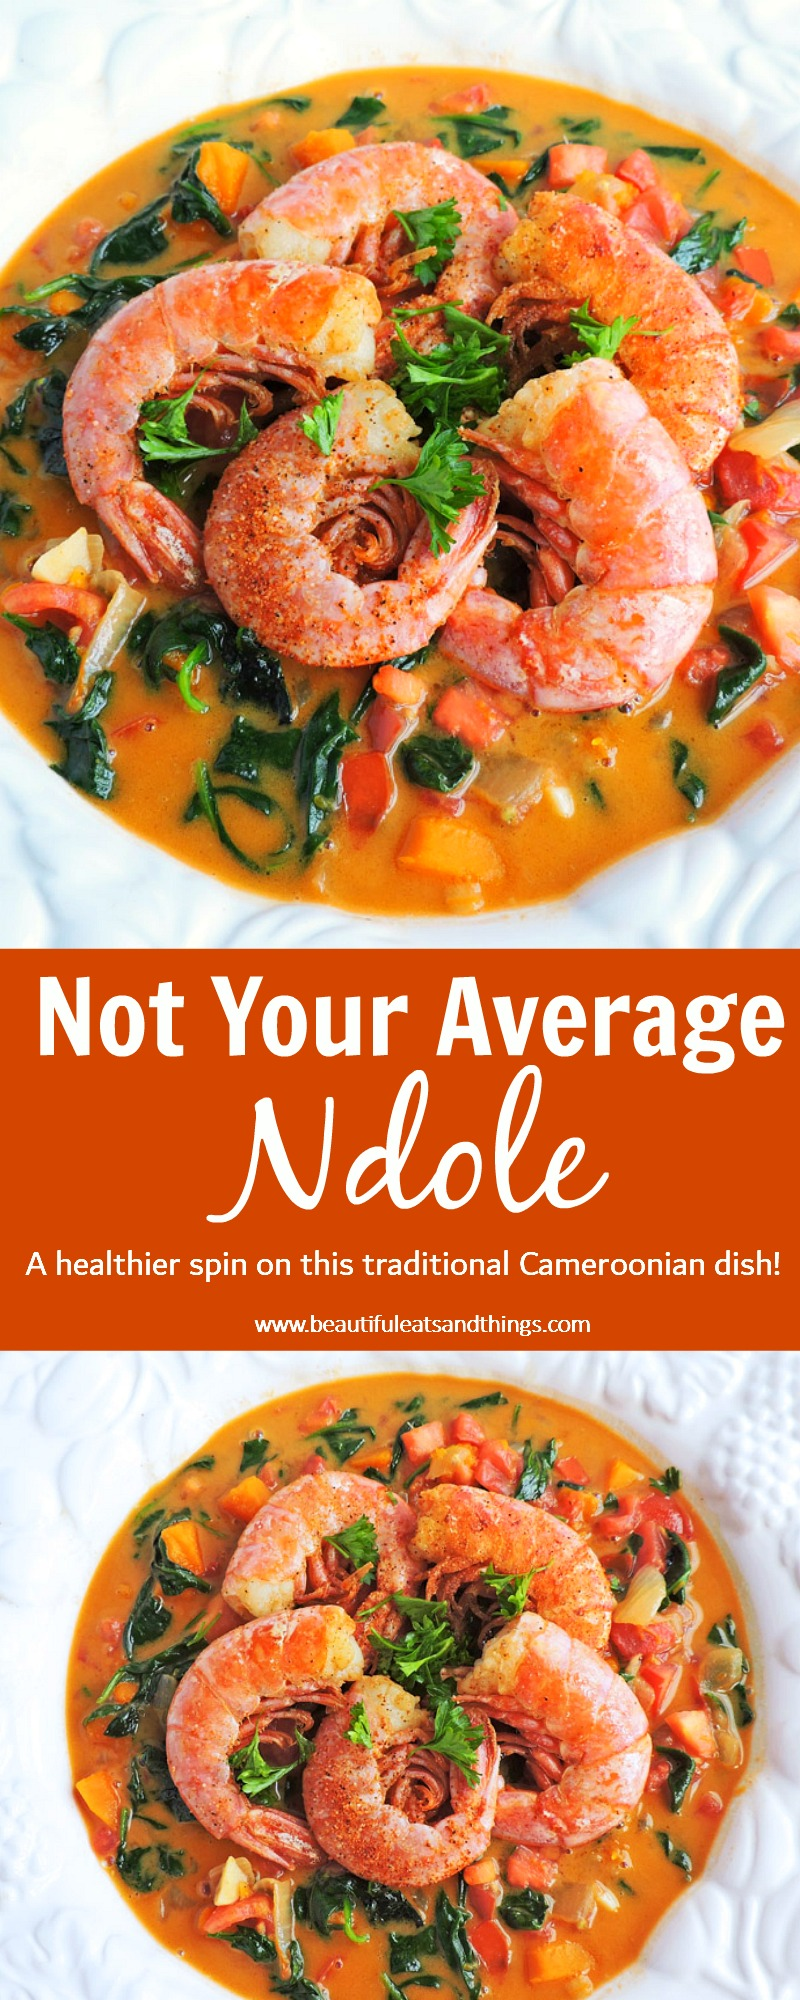 Ndole, a Cameroonian Peanut Stew served in a white bowl with cajun shrimp or prawns on top beautifuleatsandthings.com